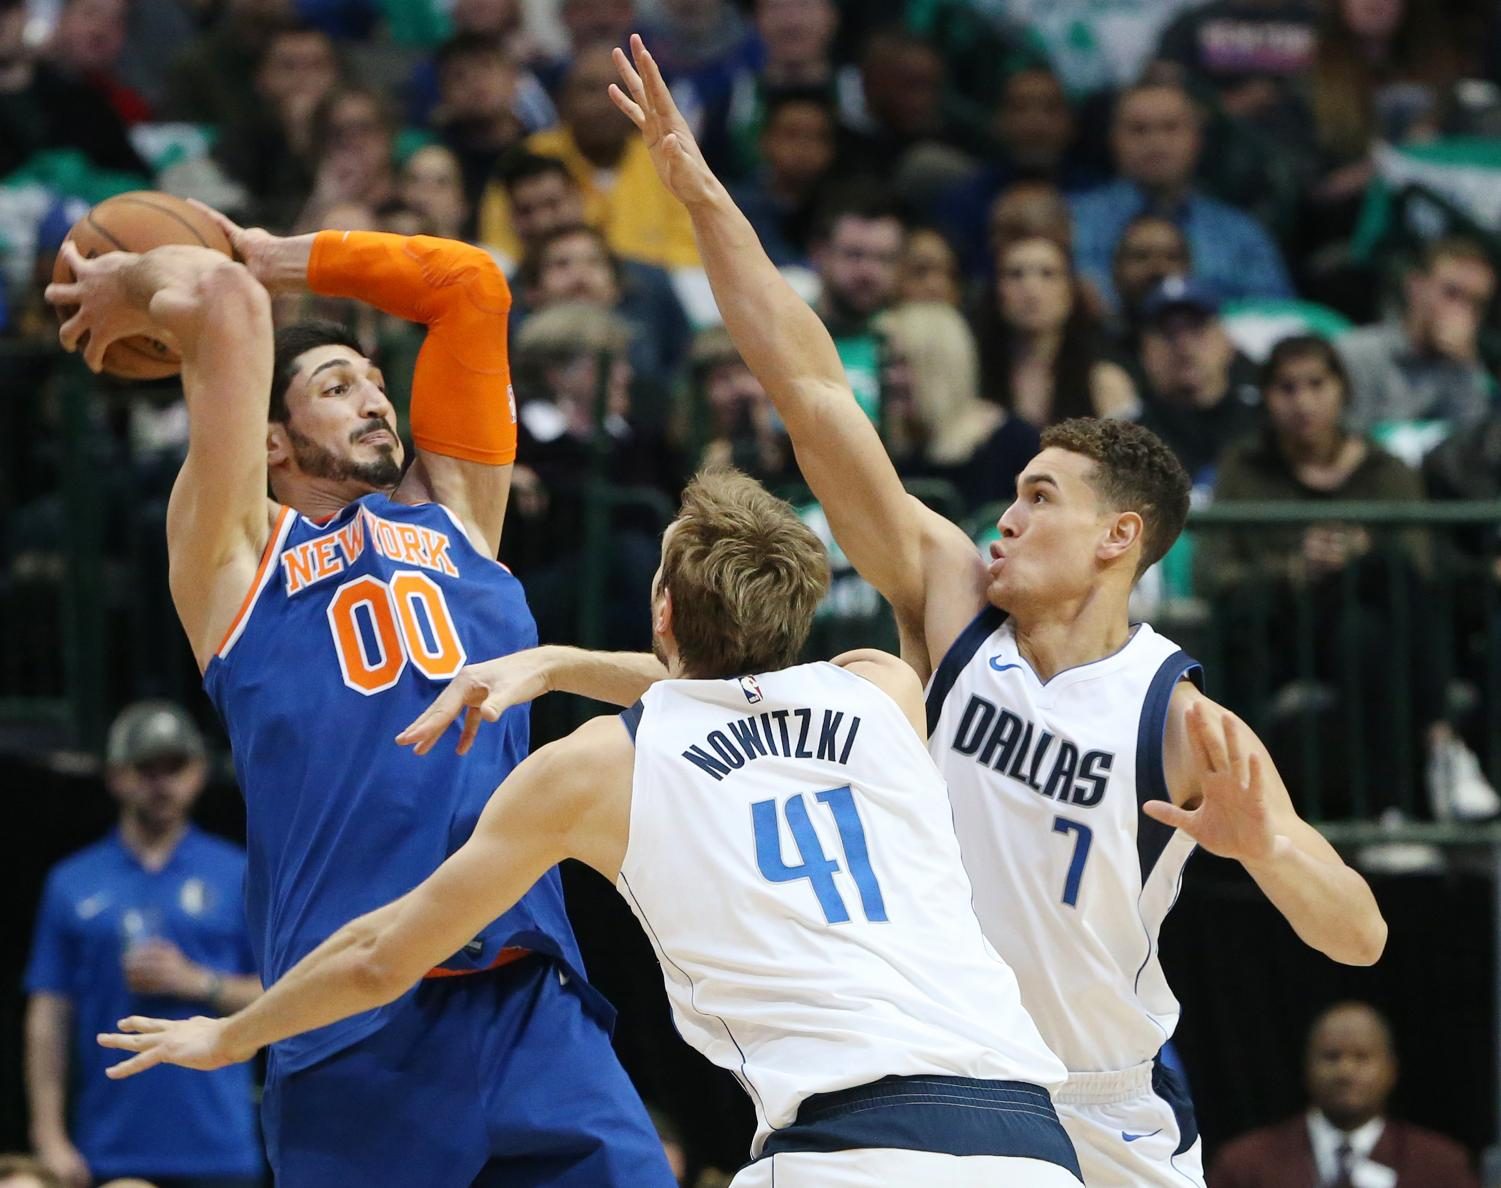 Dallas Mavericks forward Dirk Nowitzki (41) and forward Dwight Powell (7) defend against New York Knicks center Enes Kanter (00) during the first half on Sunday, January 7, 2018 at the American Airlines Center in Dallas, Texas.